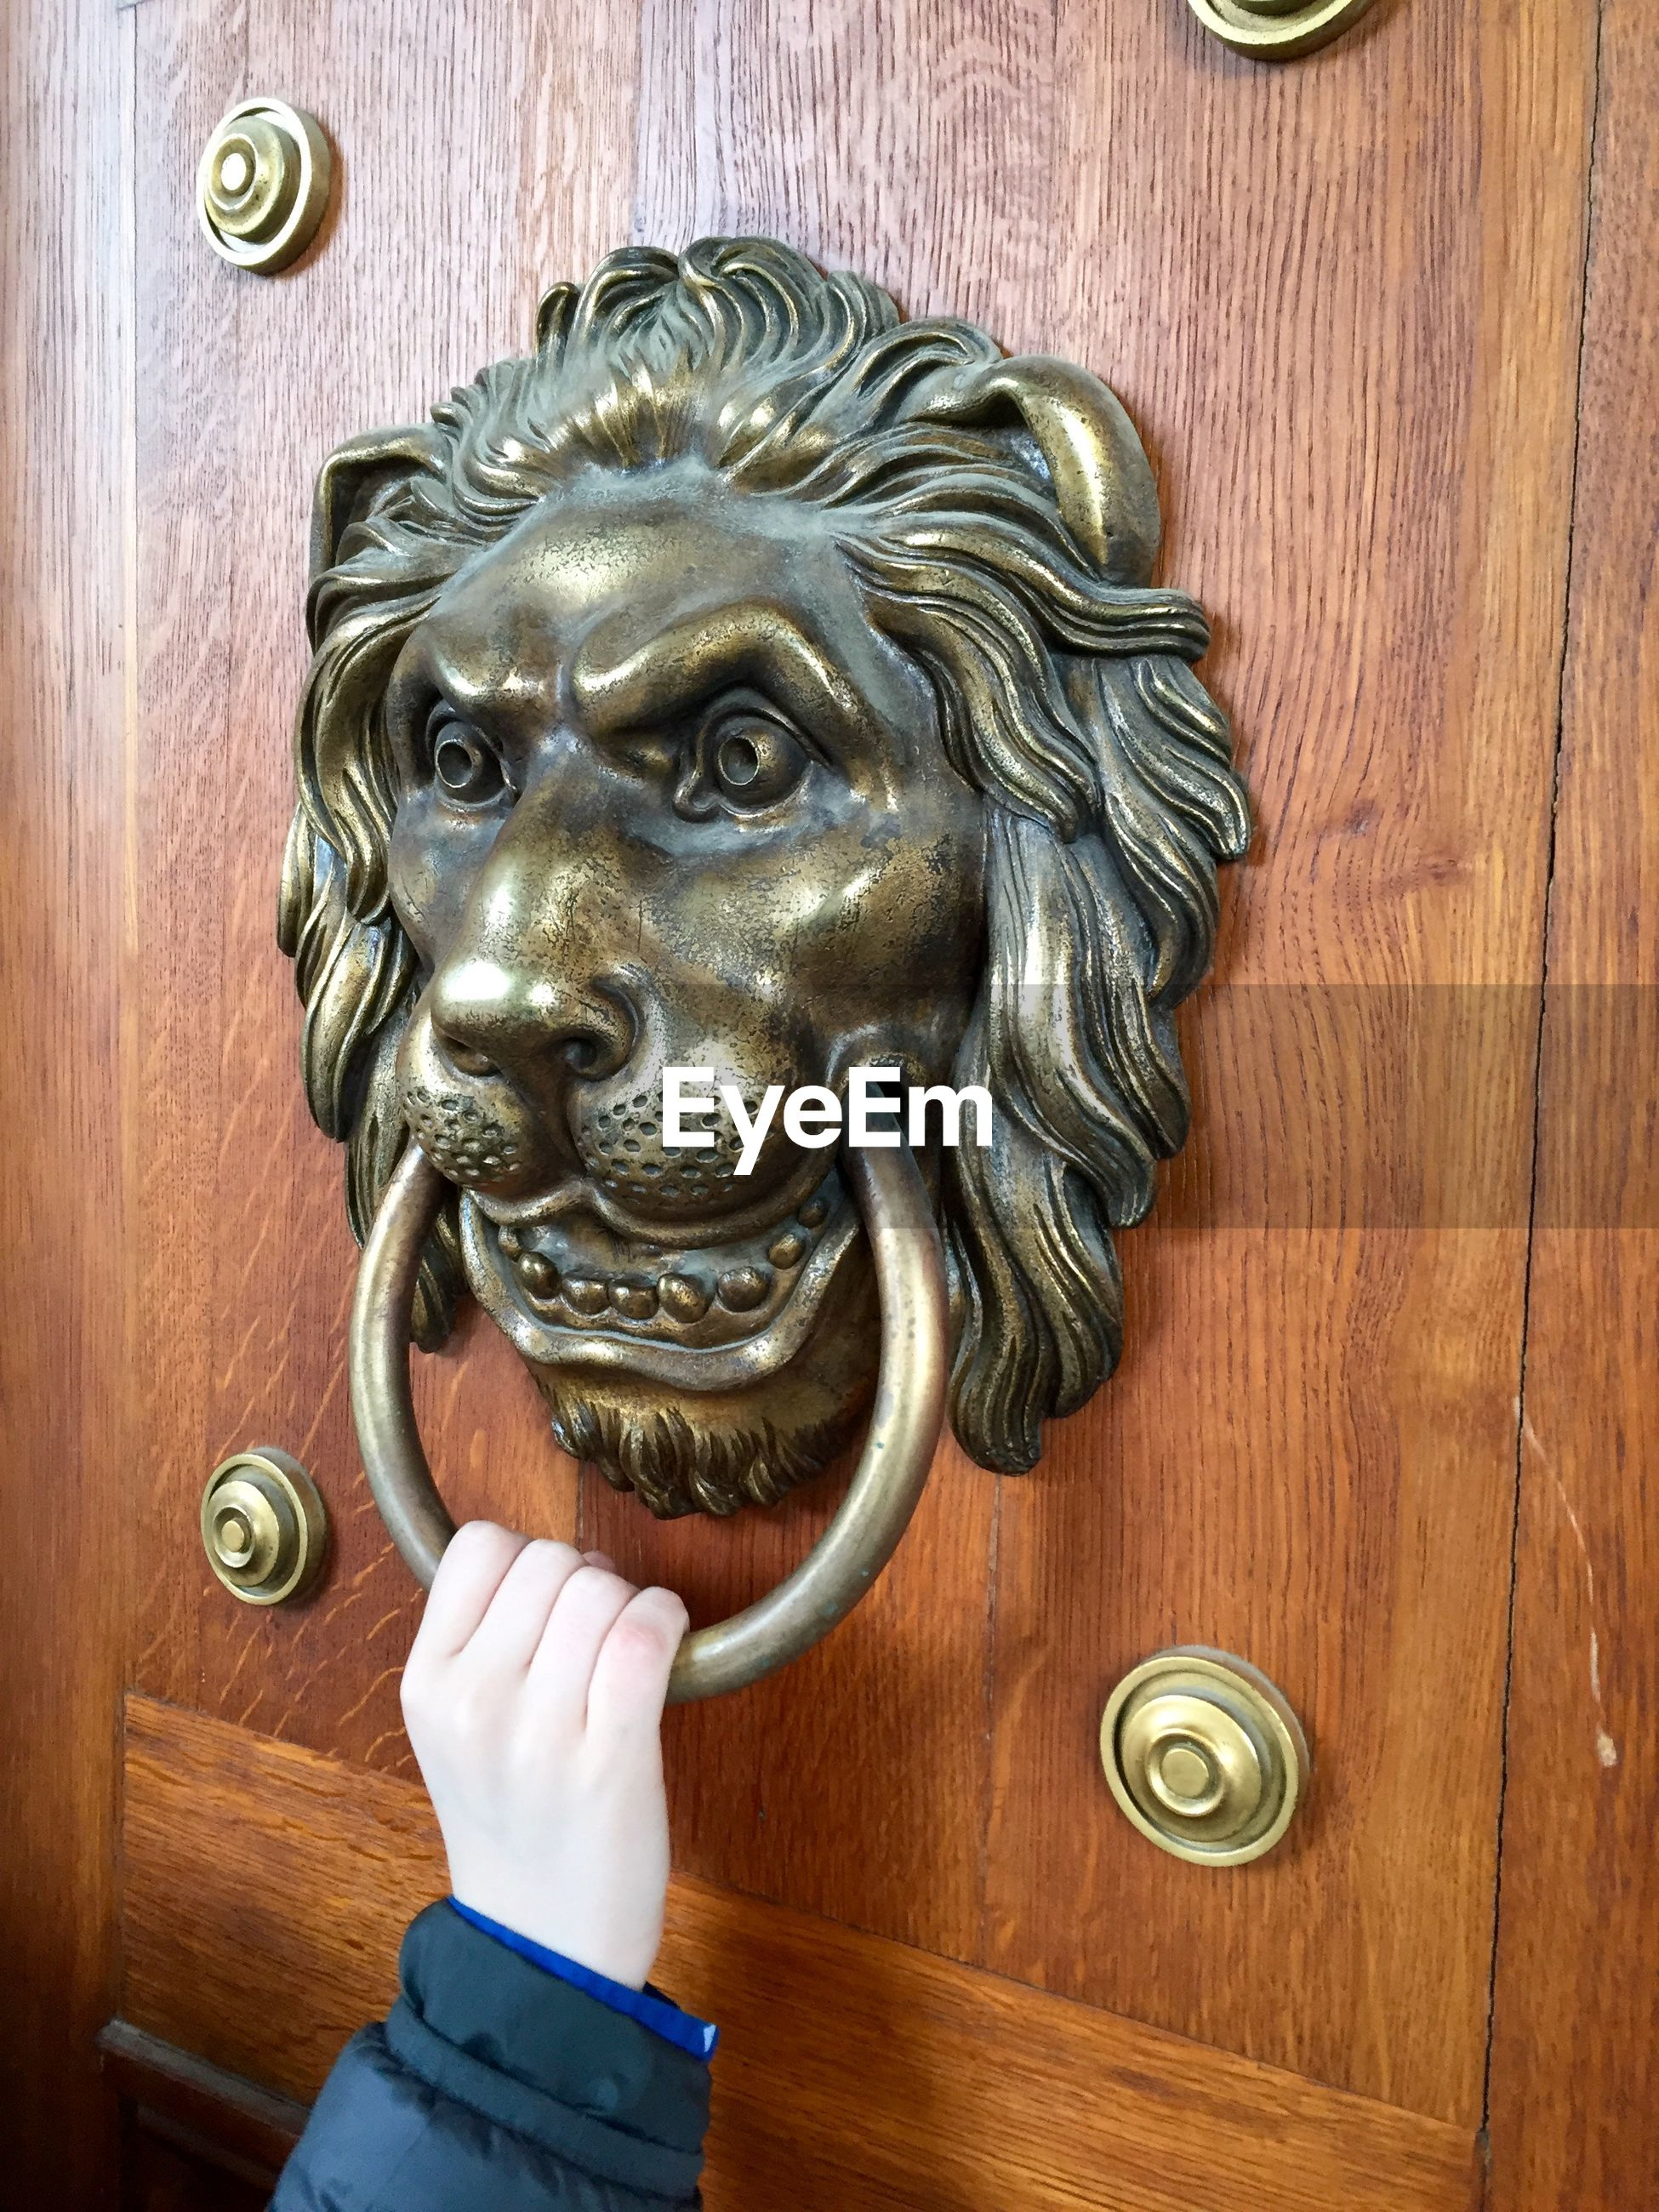 Cropped image of woman holding old-fashioned lion shape door knocker